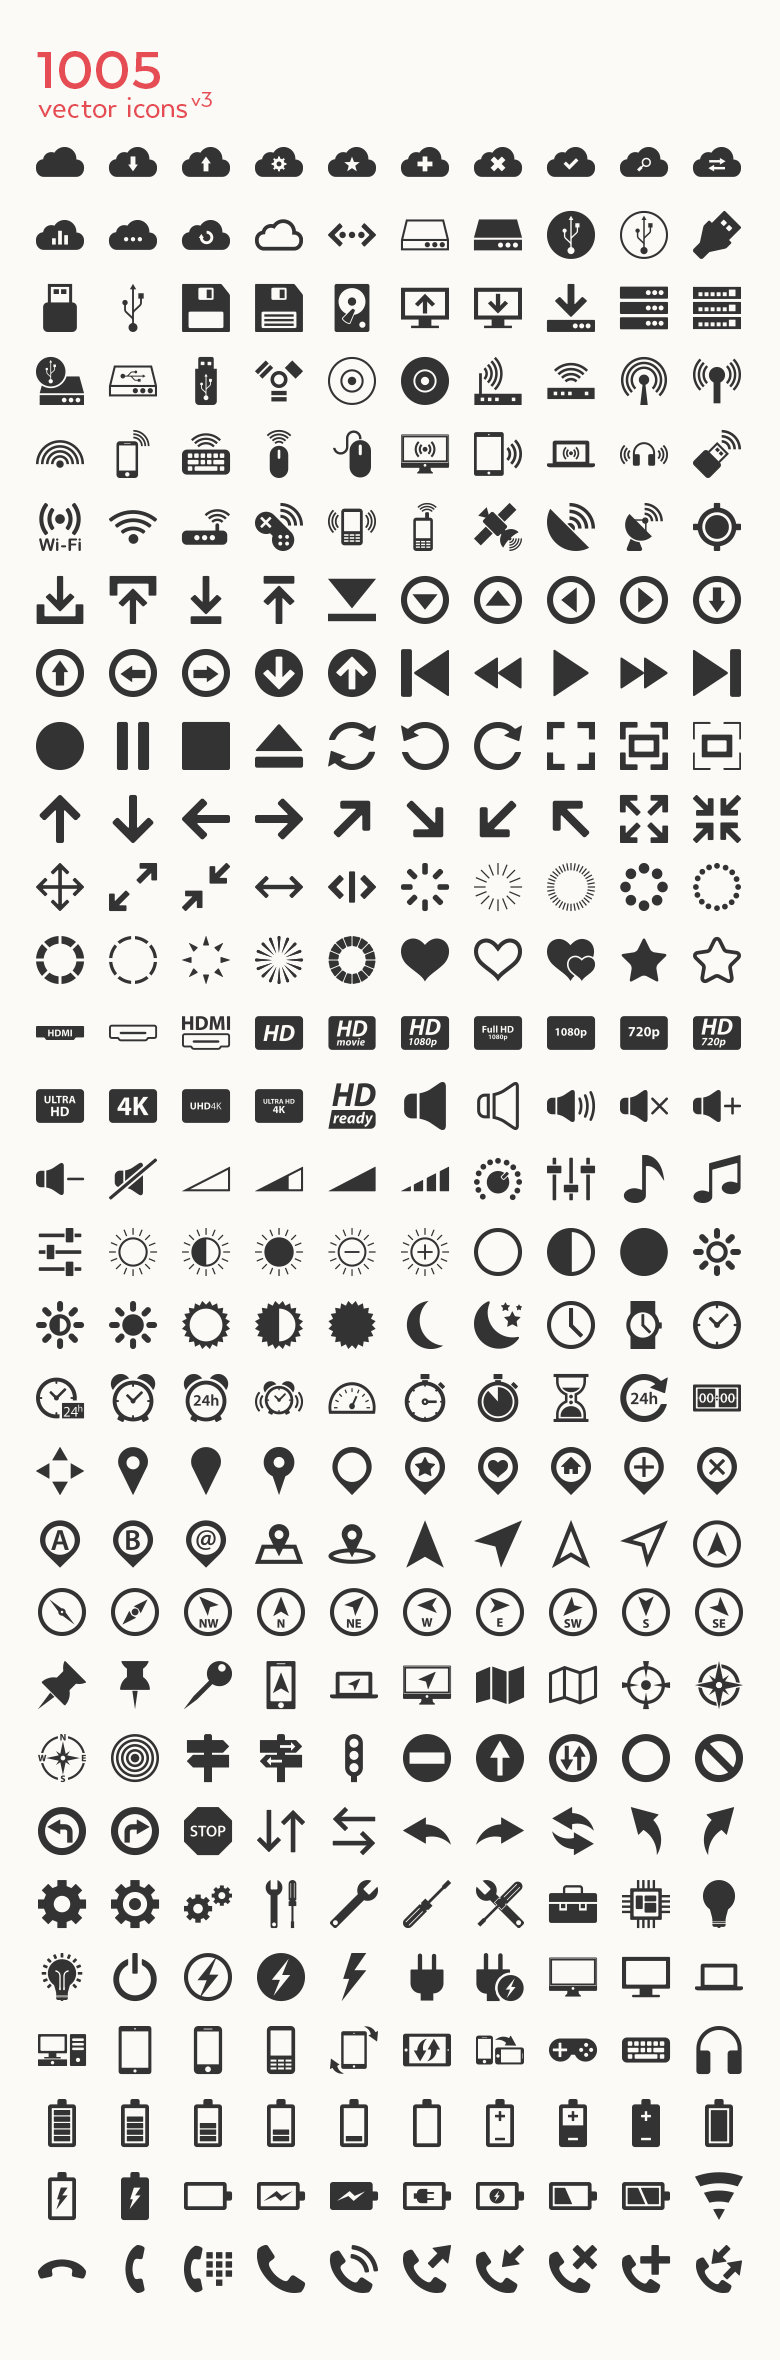 1005-vector-icons-preview-1b